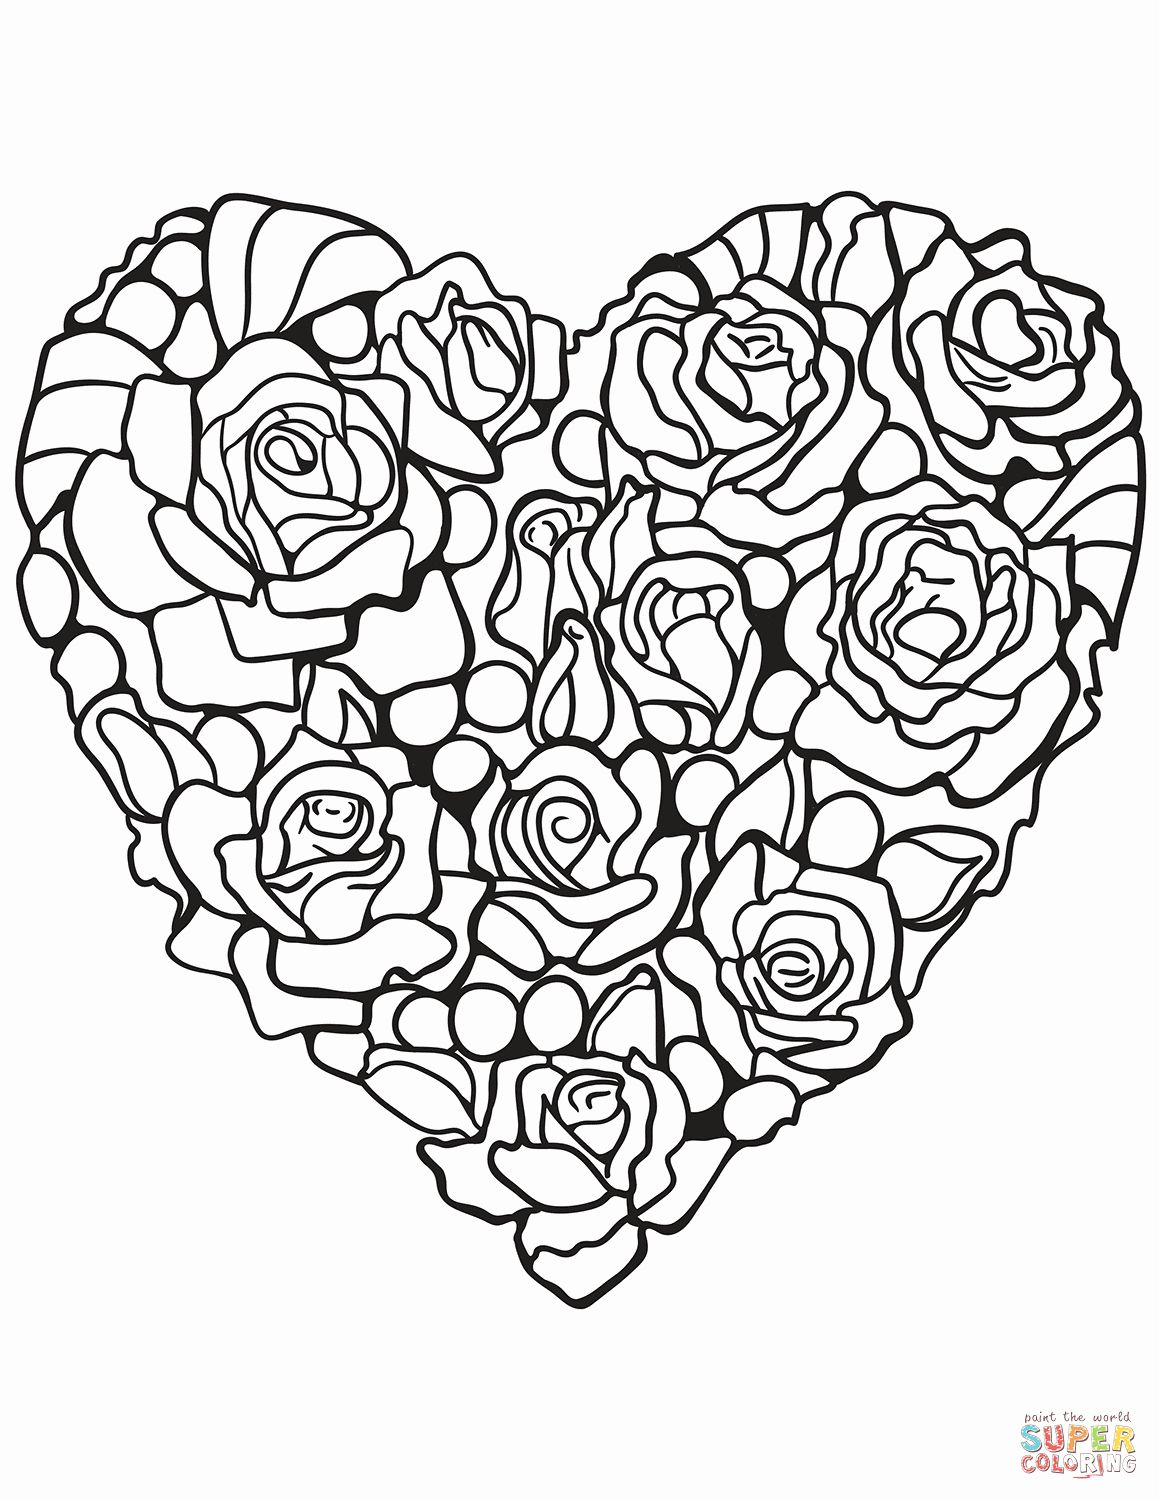 Rose Coloring Books Awesome Heart Made Of Rose Coloring Page Rose Coloring Pages Heart Coloring Pages Detailed Coloring Pages